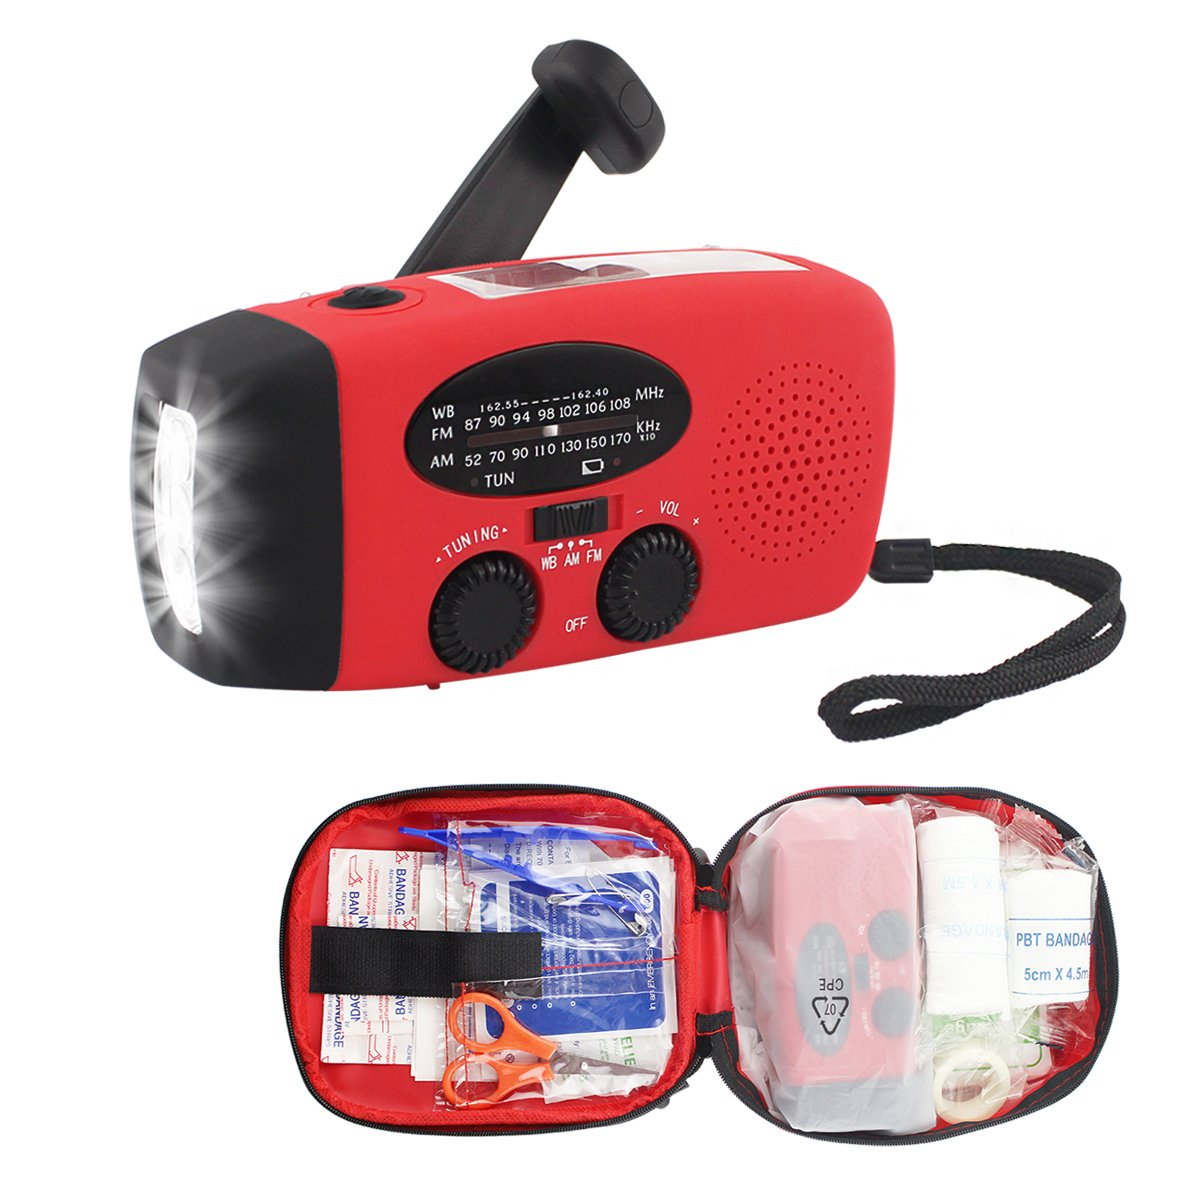 (2018 Version) FUNHOUR Hand Crank Emergency NOAA Weather Radio Self Powered Solar Dynamo AM FM Radios kit with 3 LED Flashlight 1000mAh Portable Smart Phone Charger Power Bank(Two Packaging Option)